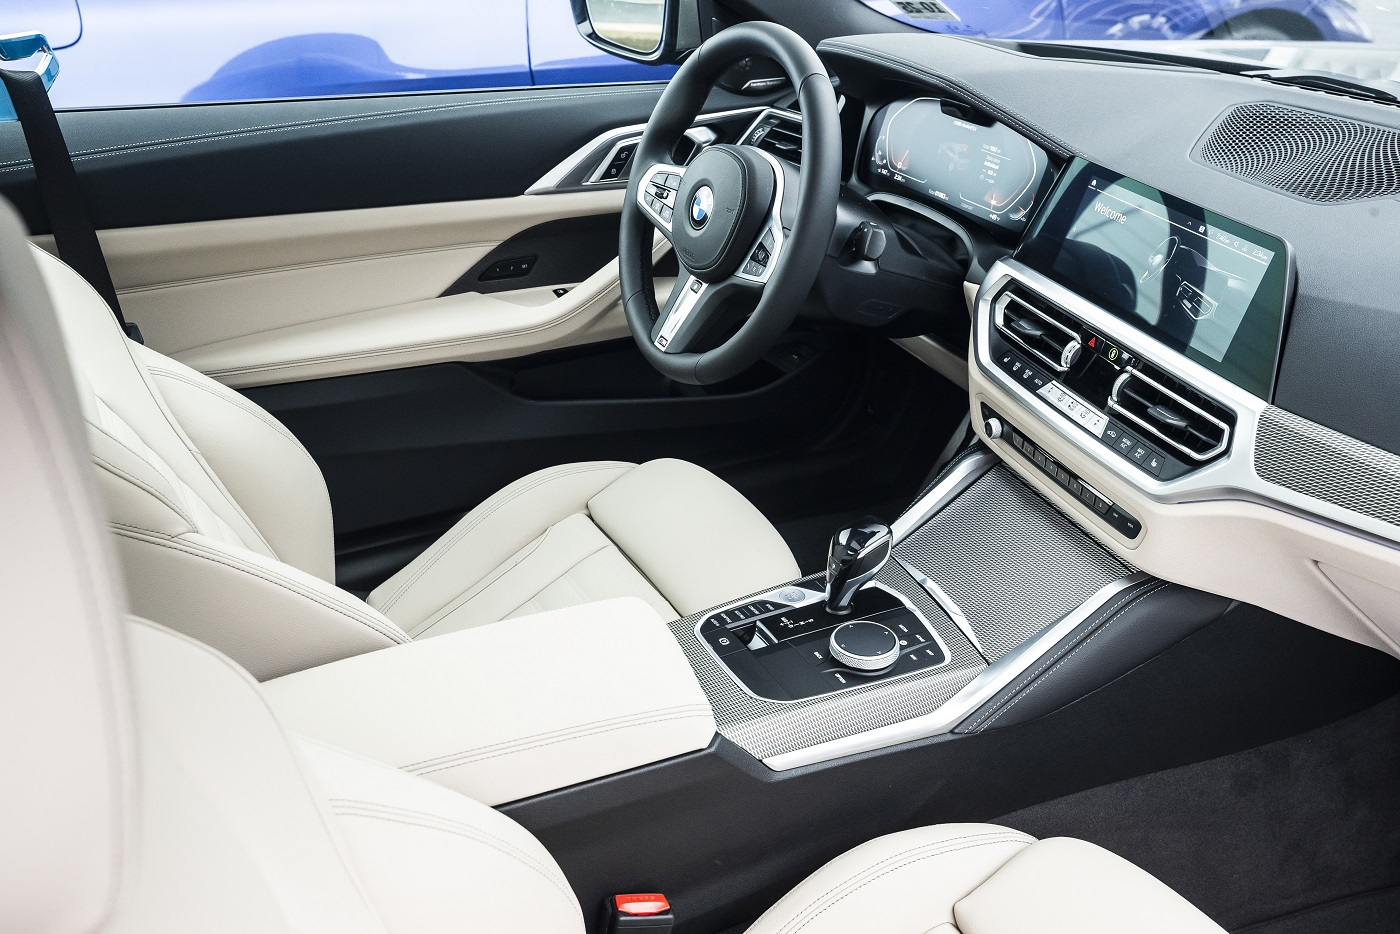 EMBED 3 2021_BMW_M440i_xDrive_Coupe_Oyester_Vernasca_leather__4_.jpg